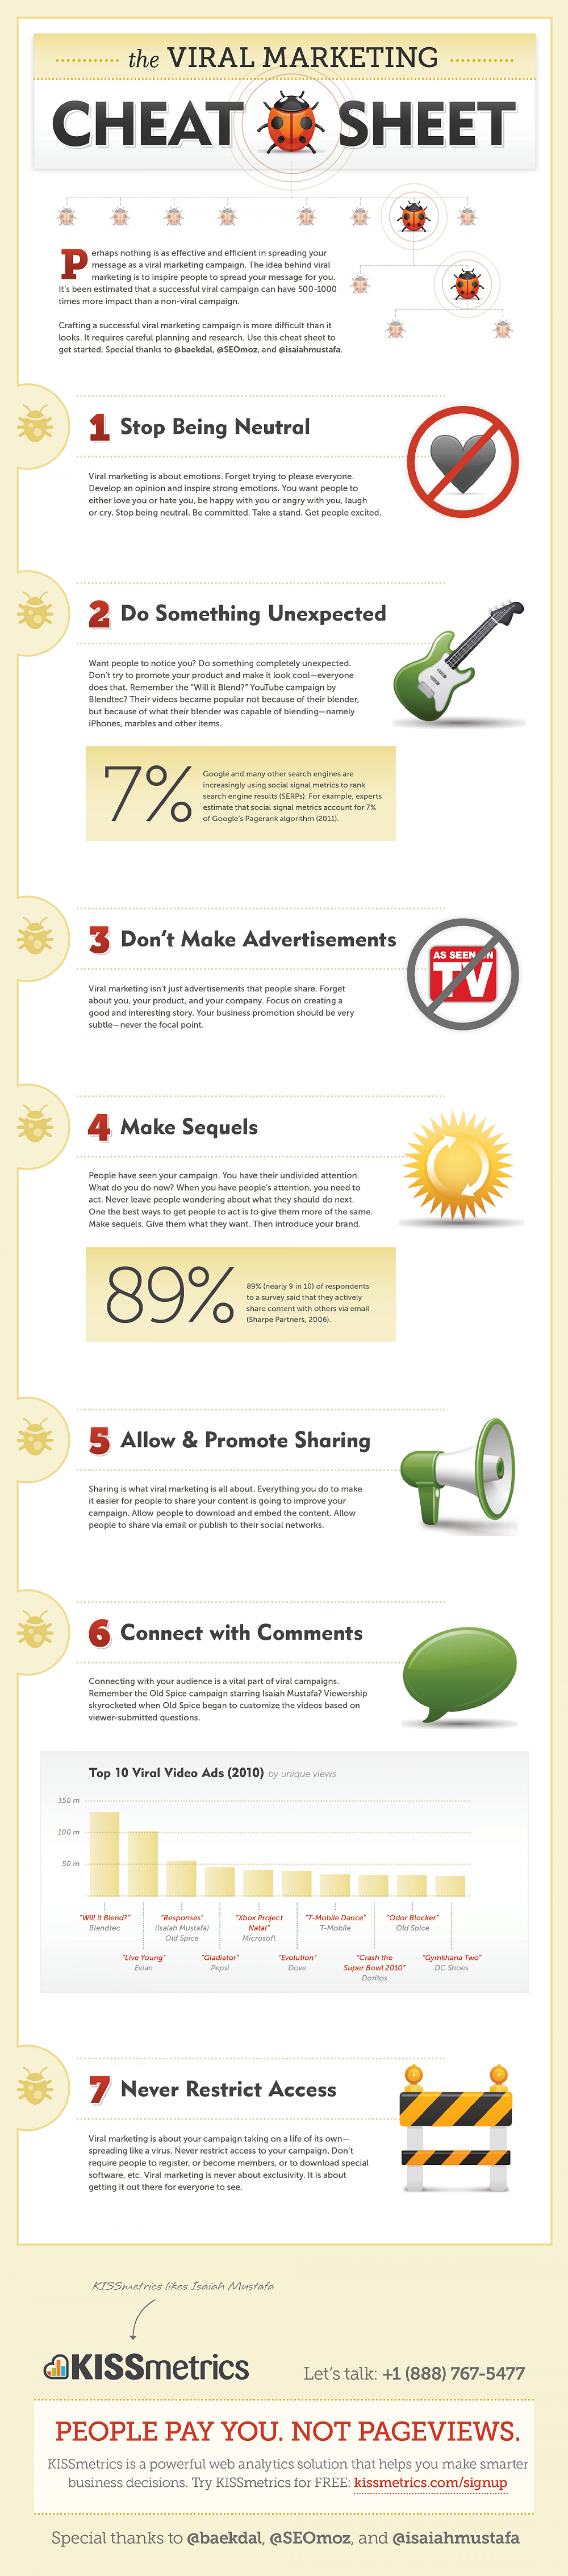 The Viral Marketing Cheat Sheet Infographic